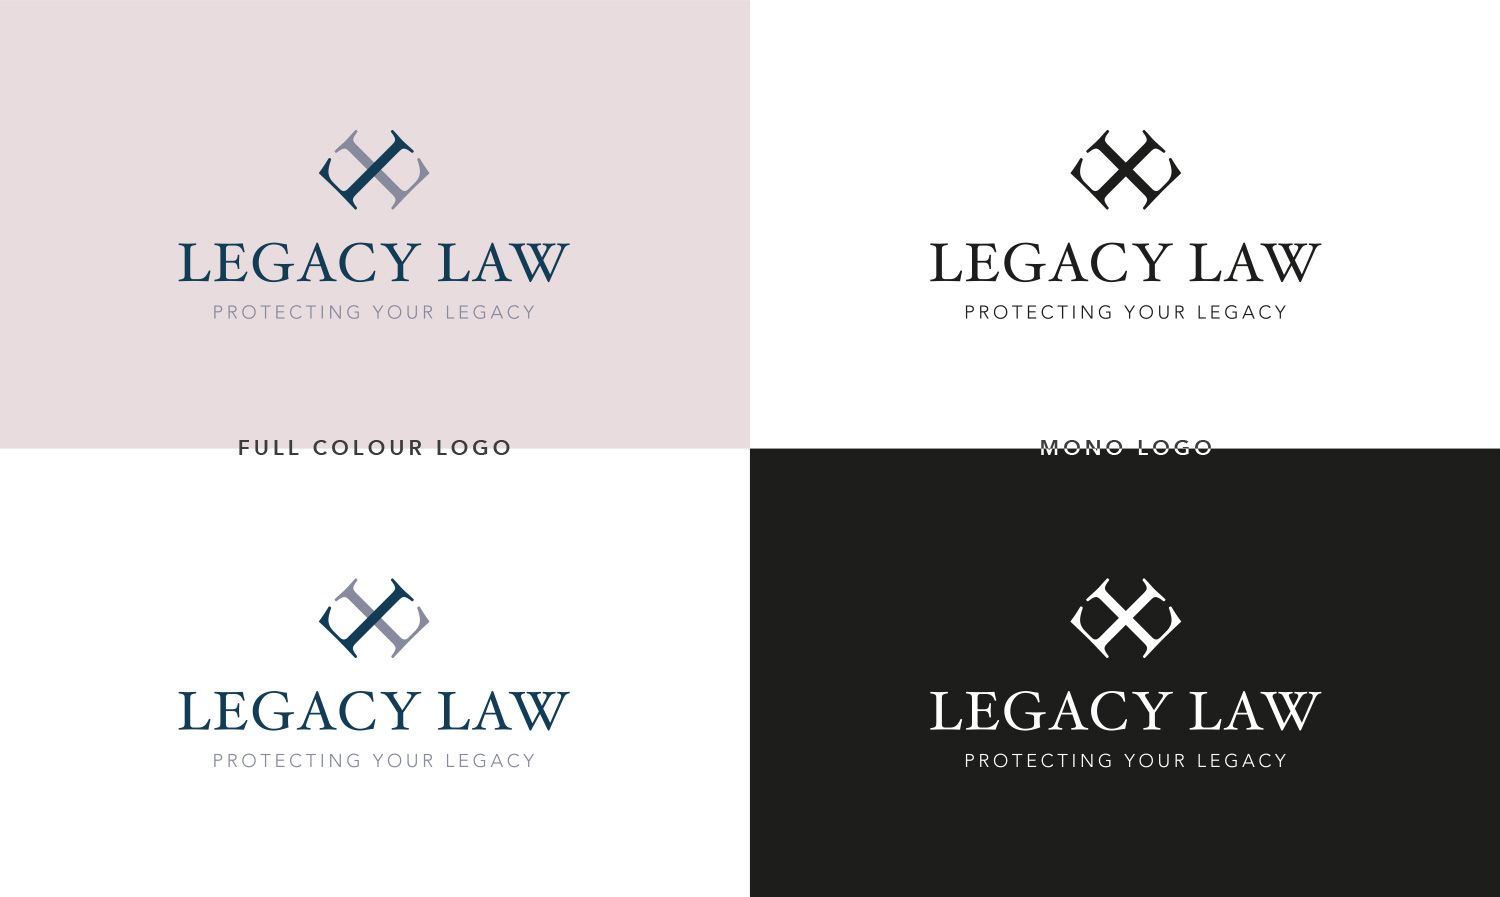 Final Logo Design for Legacy Law - by My Name is Dan